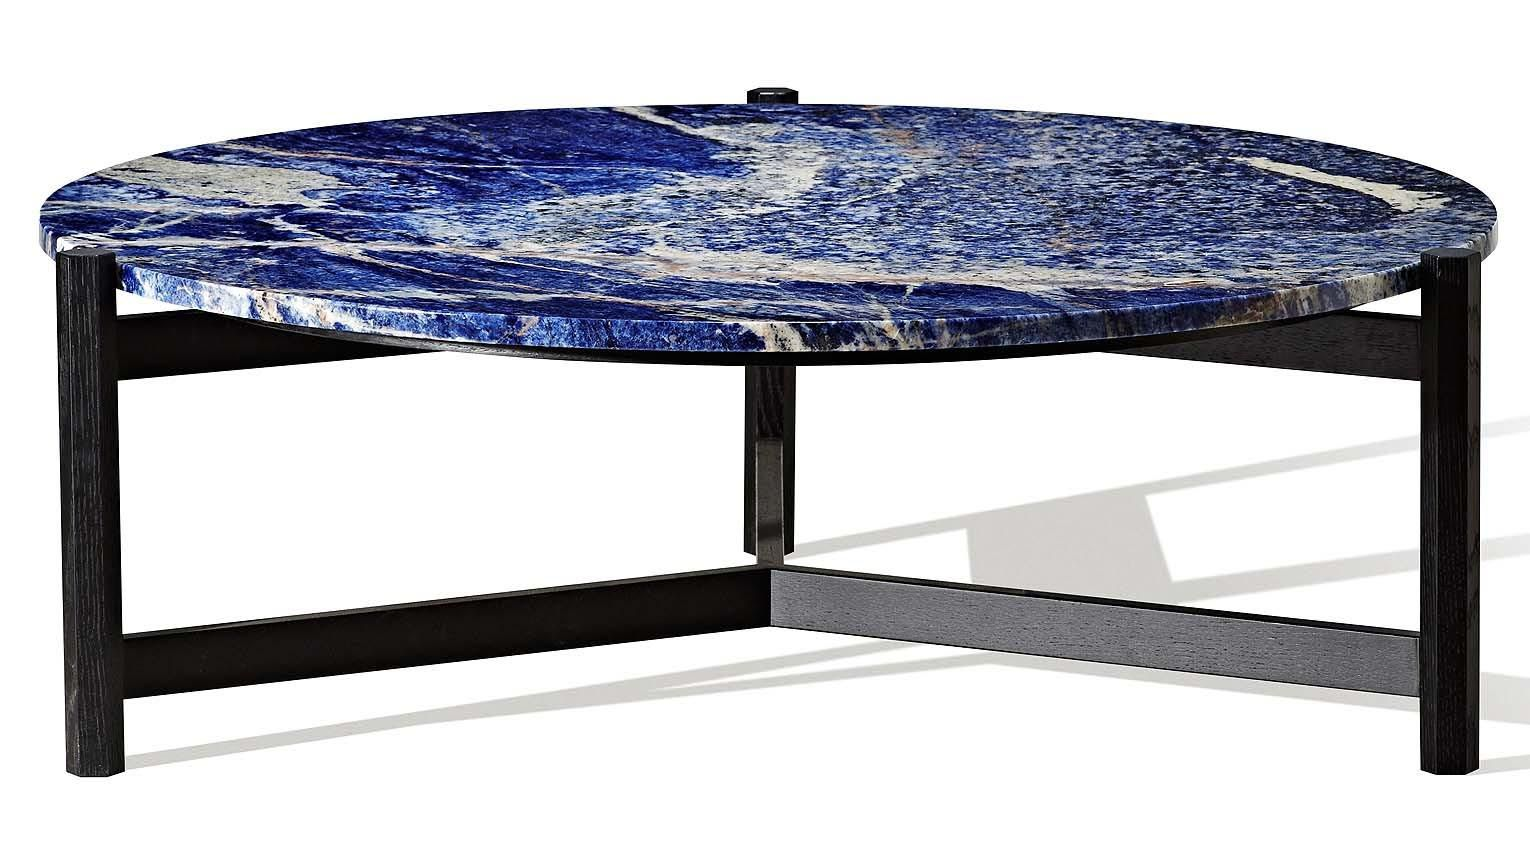 Blue Marble Coffee Table Coffee Table Design Ideas Marble Coffee Table Square Marble Coffee Table Coffee Table [ 860 x 1530 Pixel ]